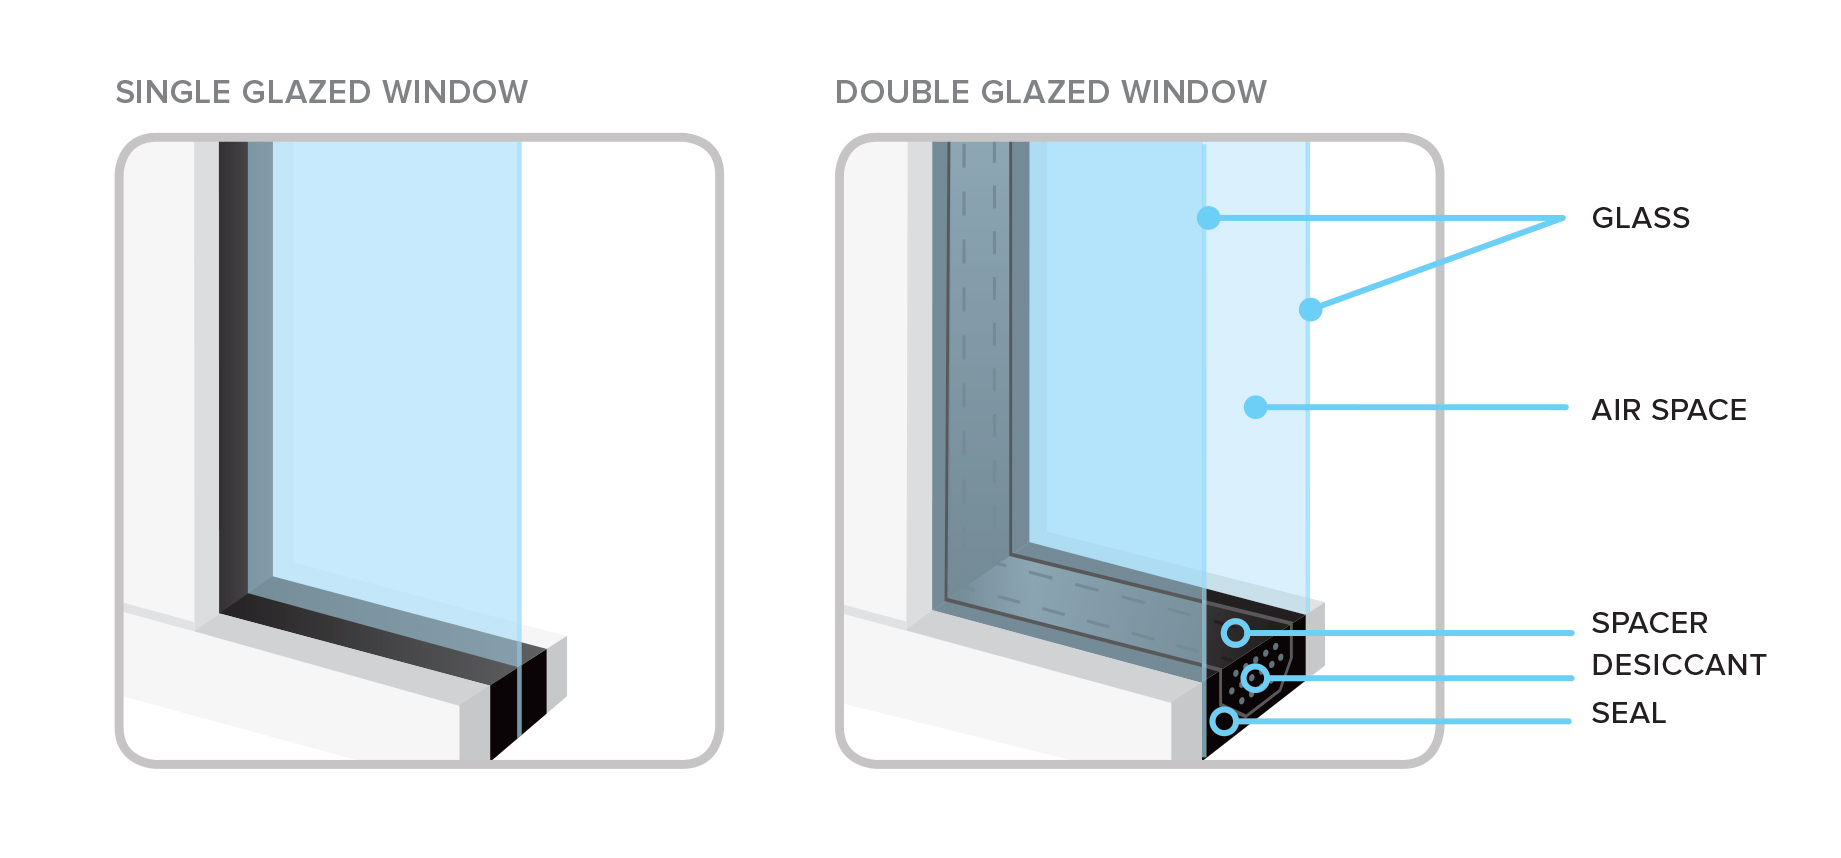 a single glazed window compared to a double glazed window the double glazed window shows the air gap between the two pieces of glass